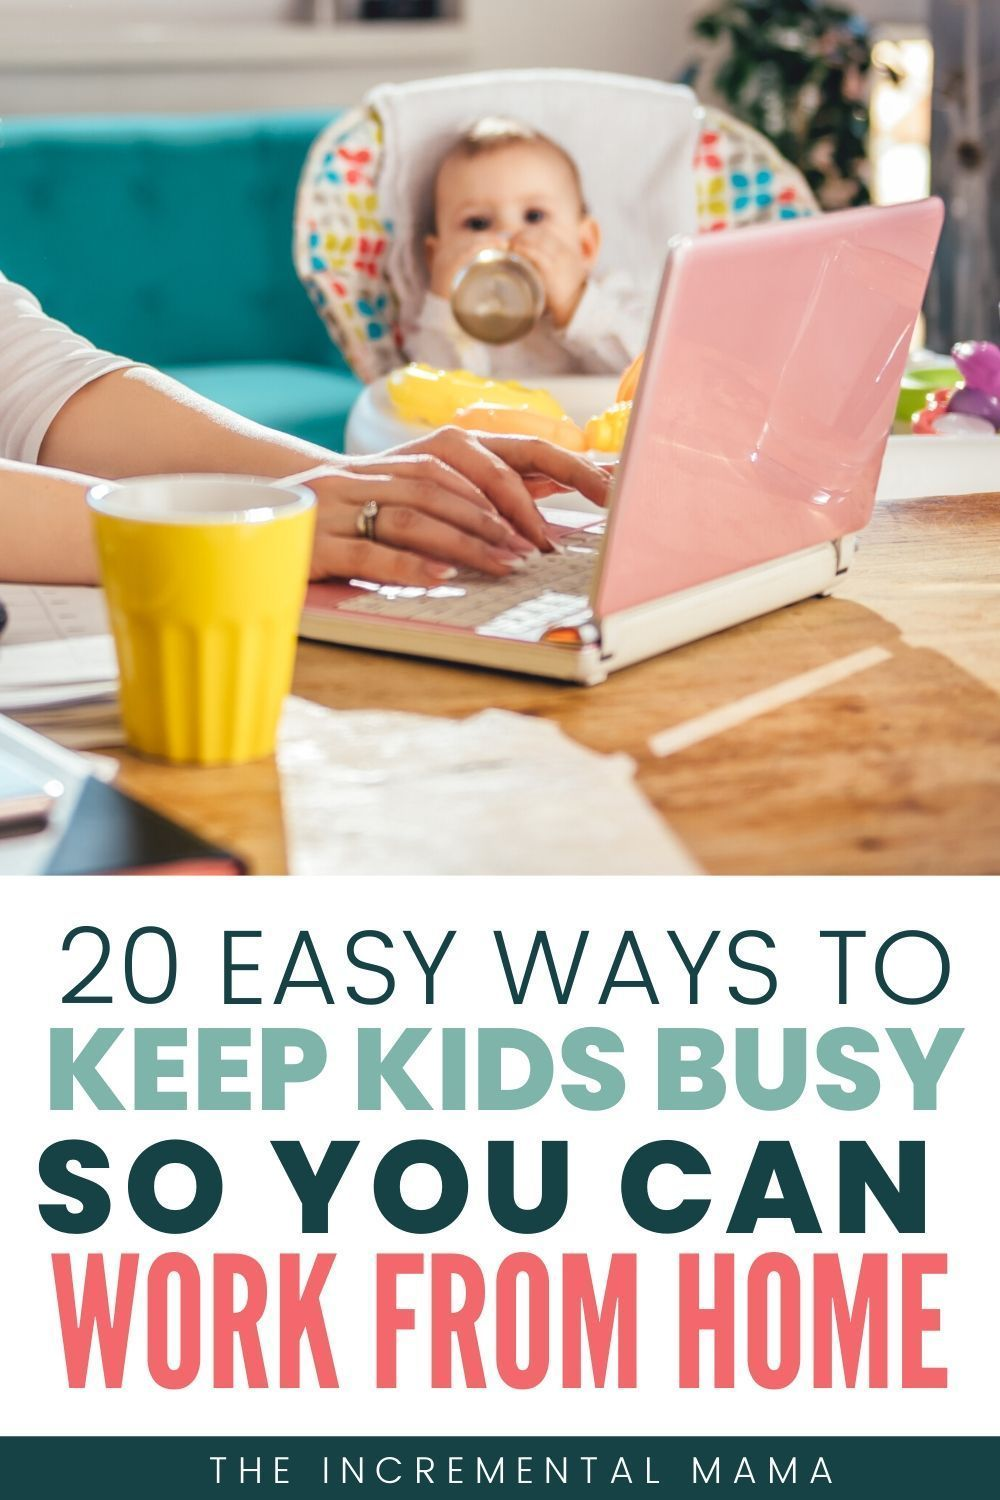 21 Screen-Free Ways to Keep Kids Busy So You Can Get Stuff